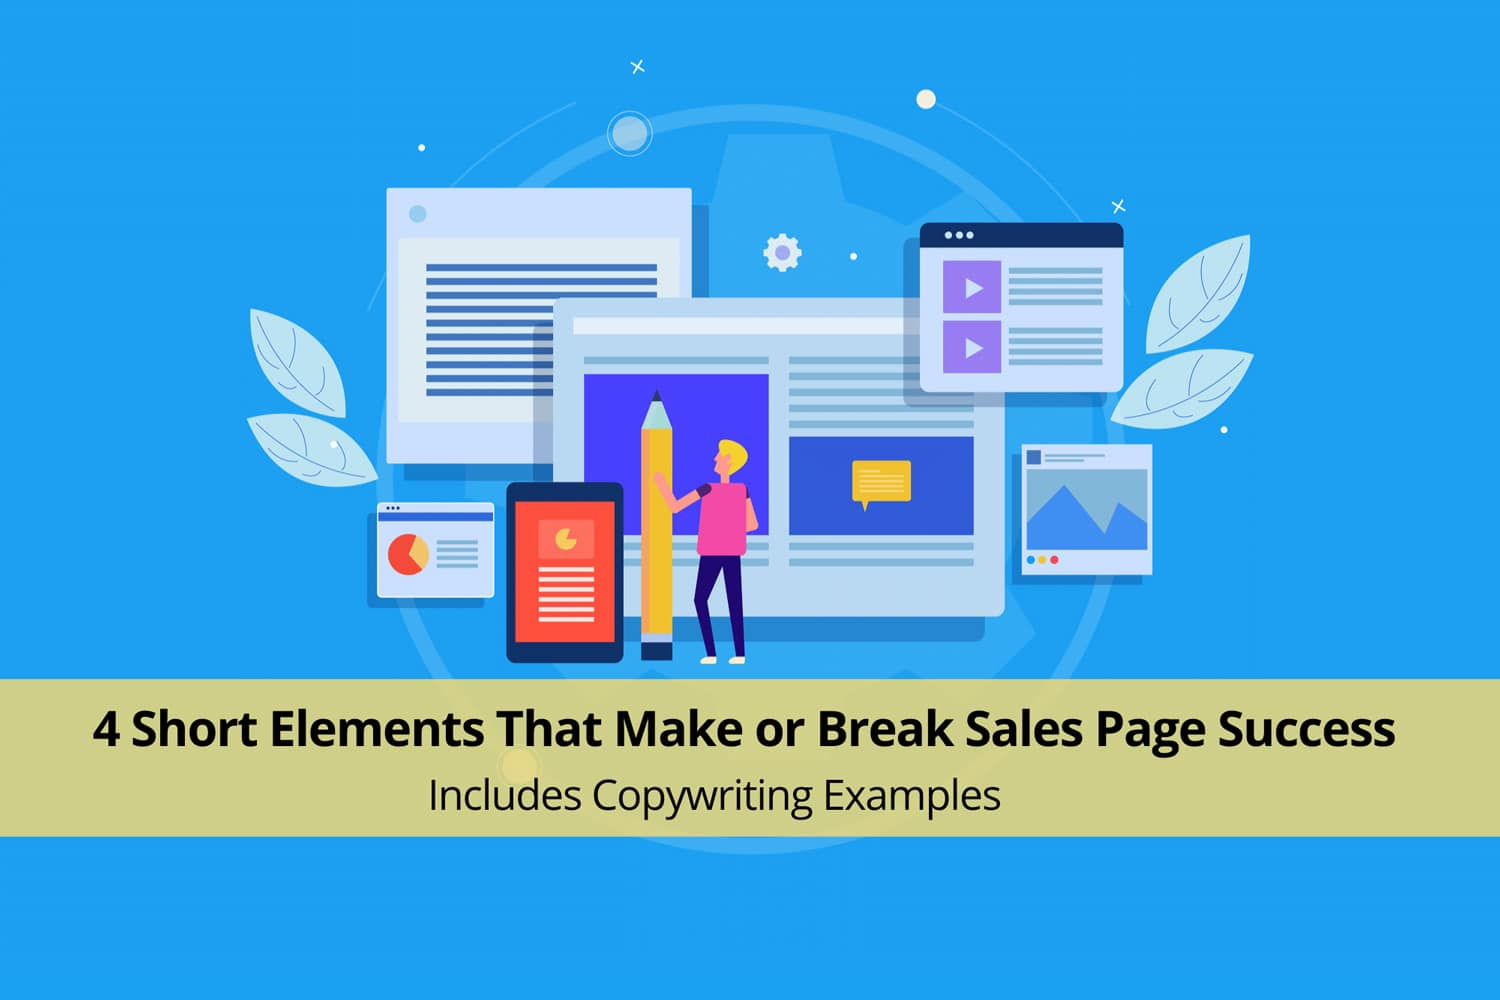 4 Short Elements That Make or Break Sales Page Success [Copywriting Examples]